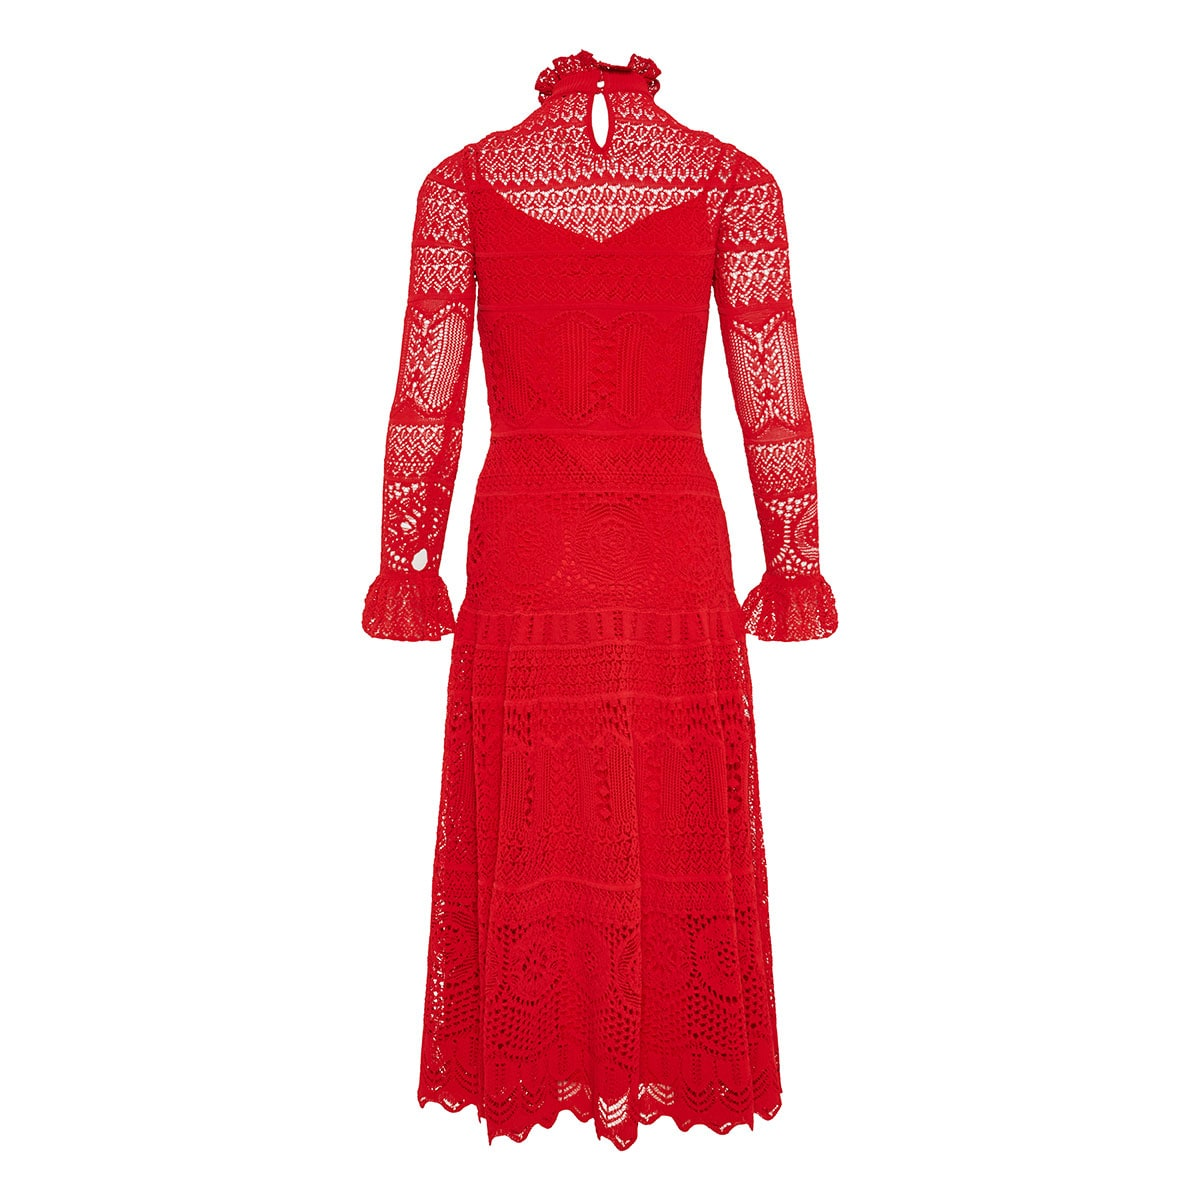 Ruffled long crochet-knitted dress